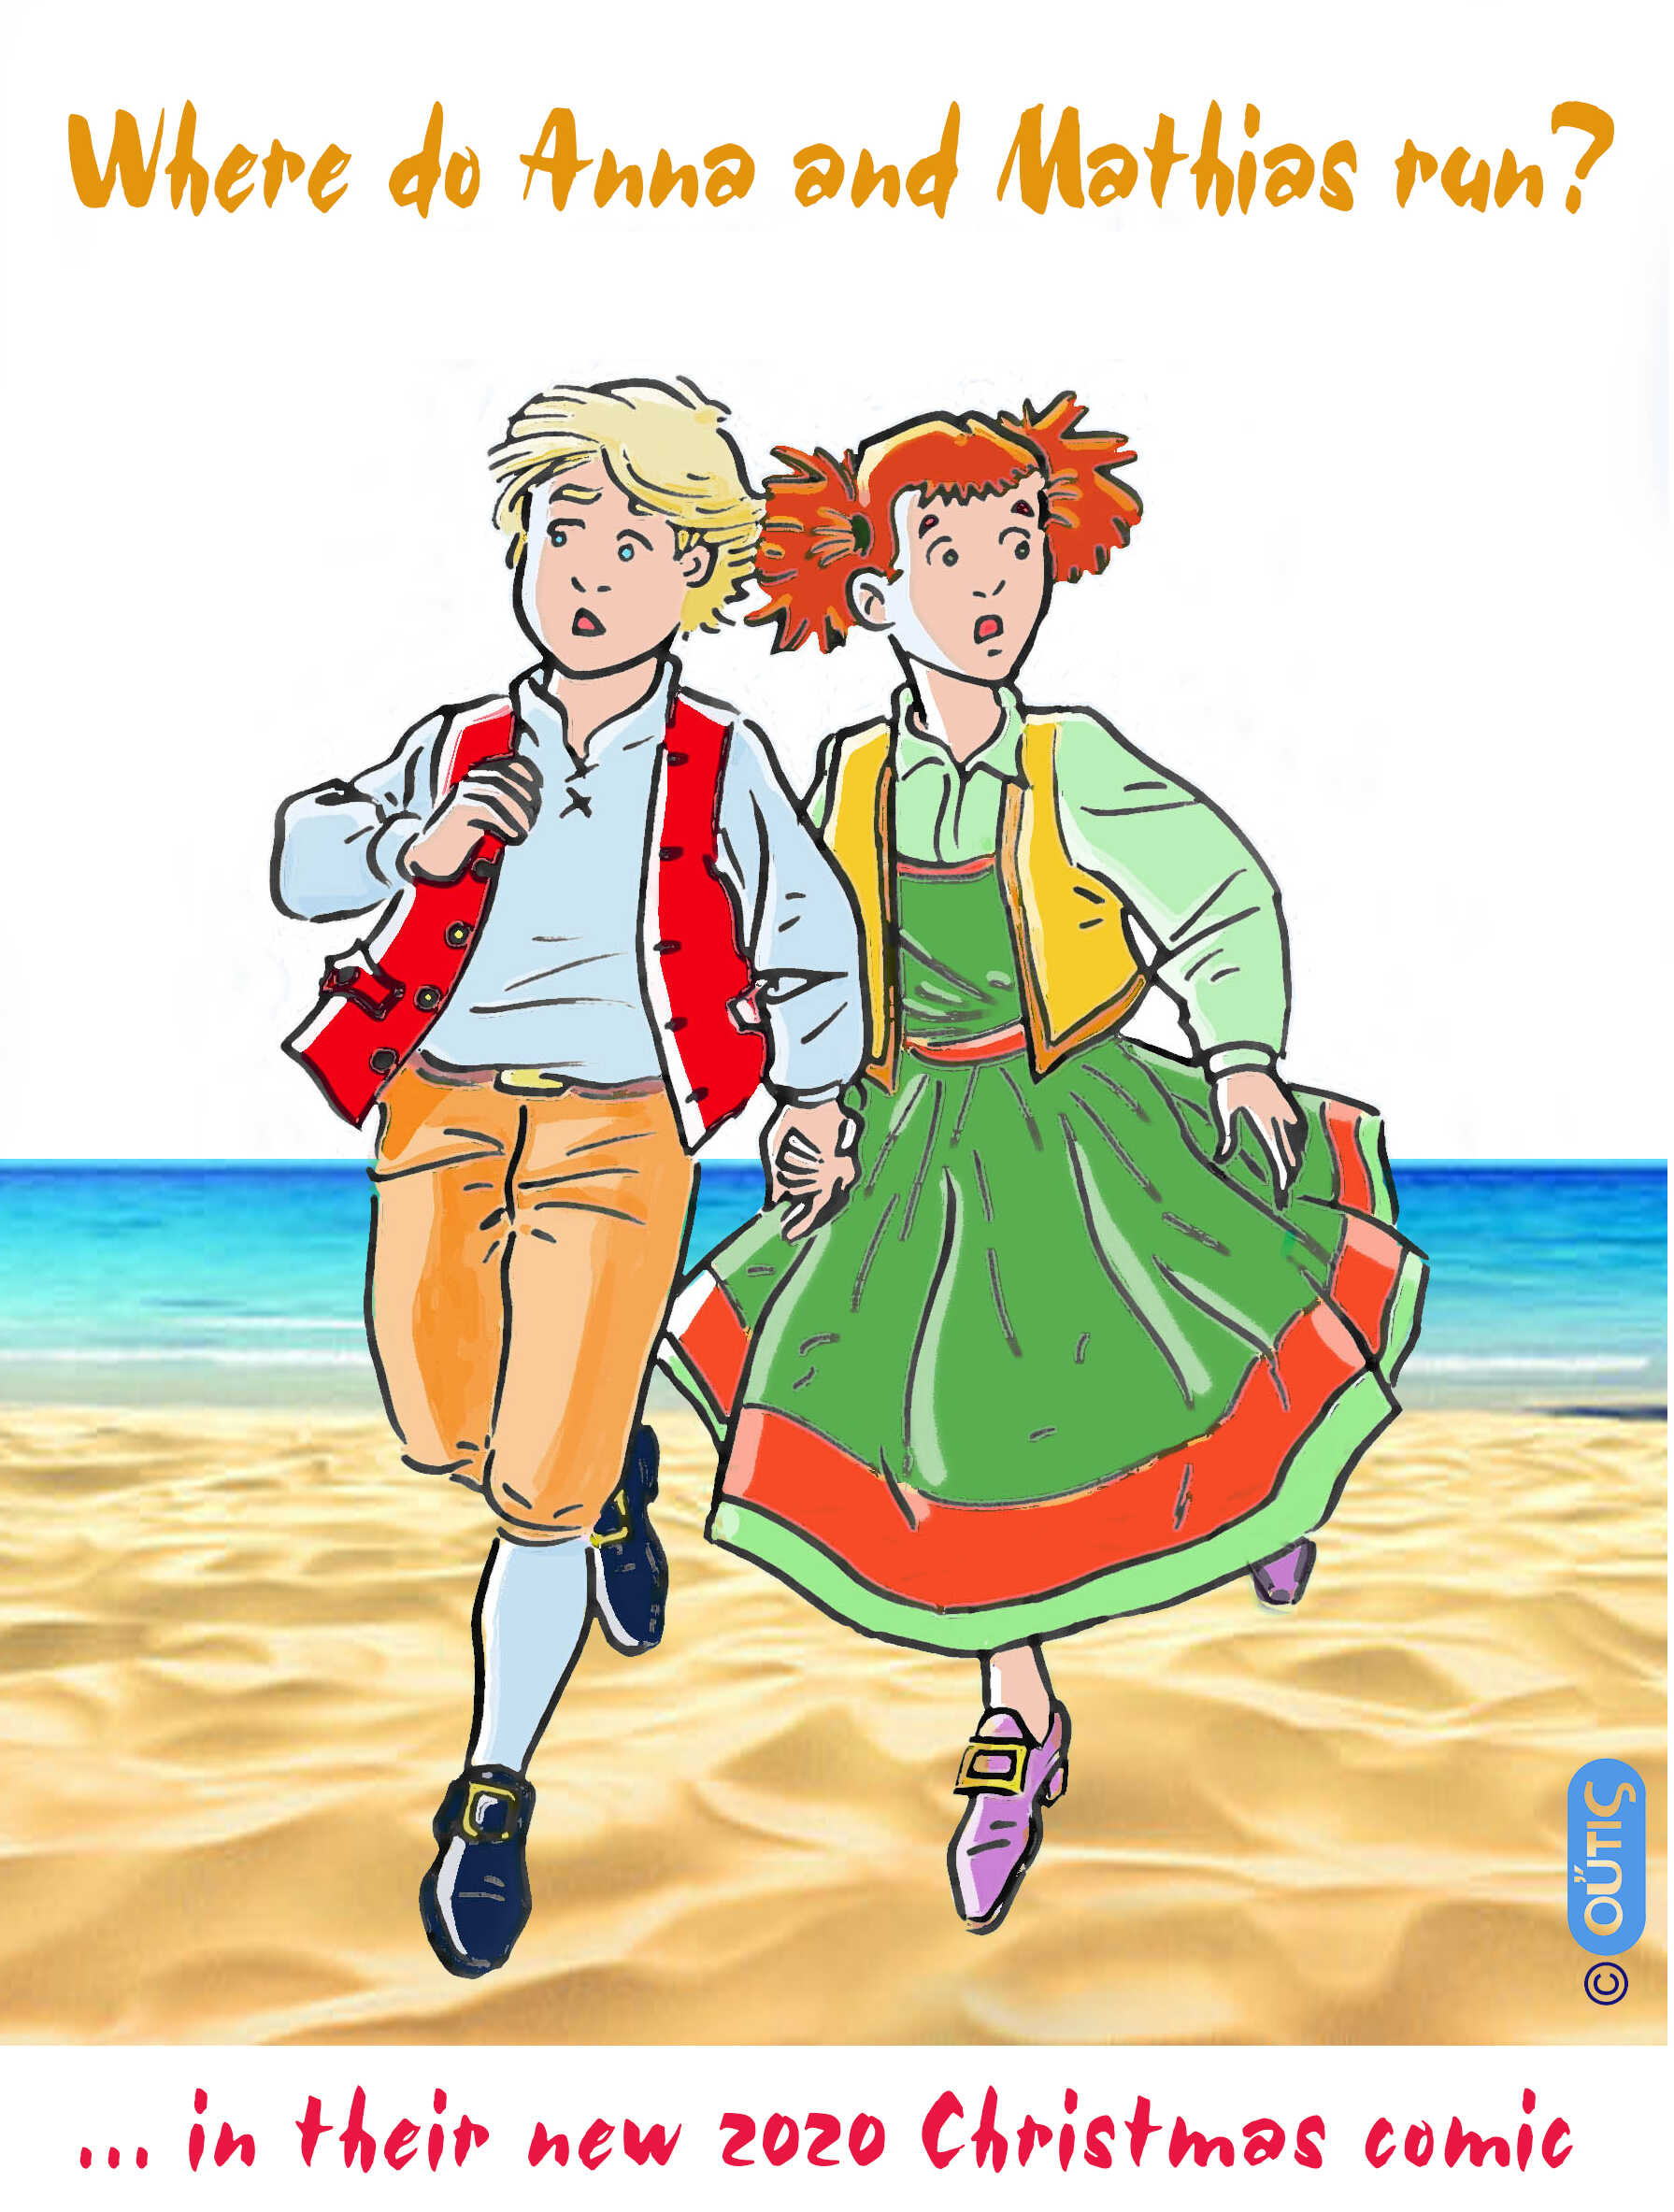 Where do Anna and Mathias run?